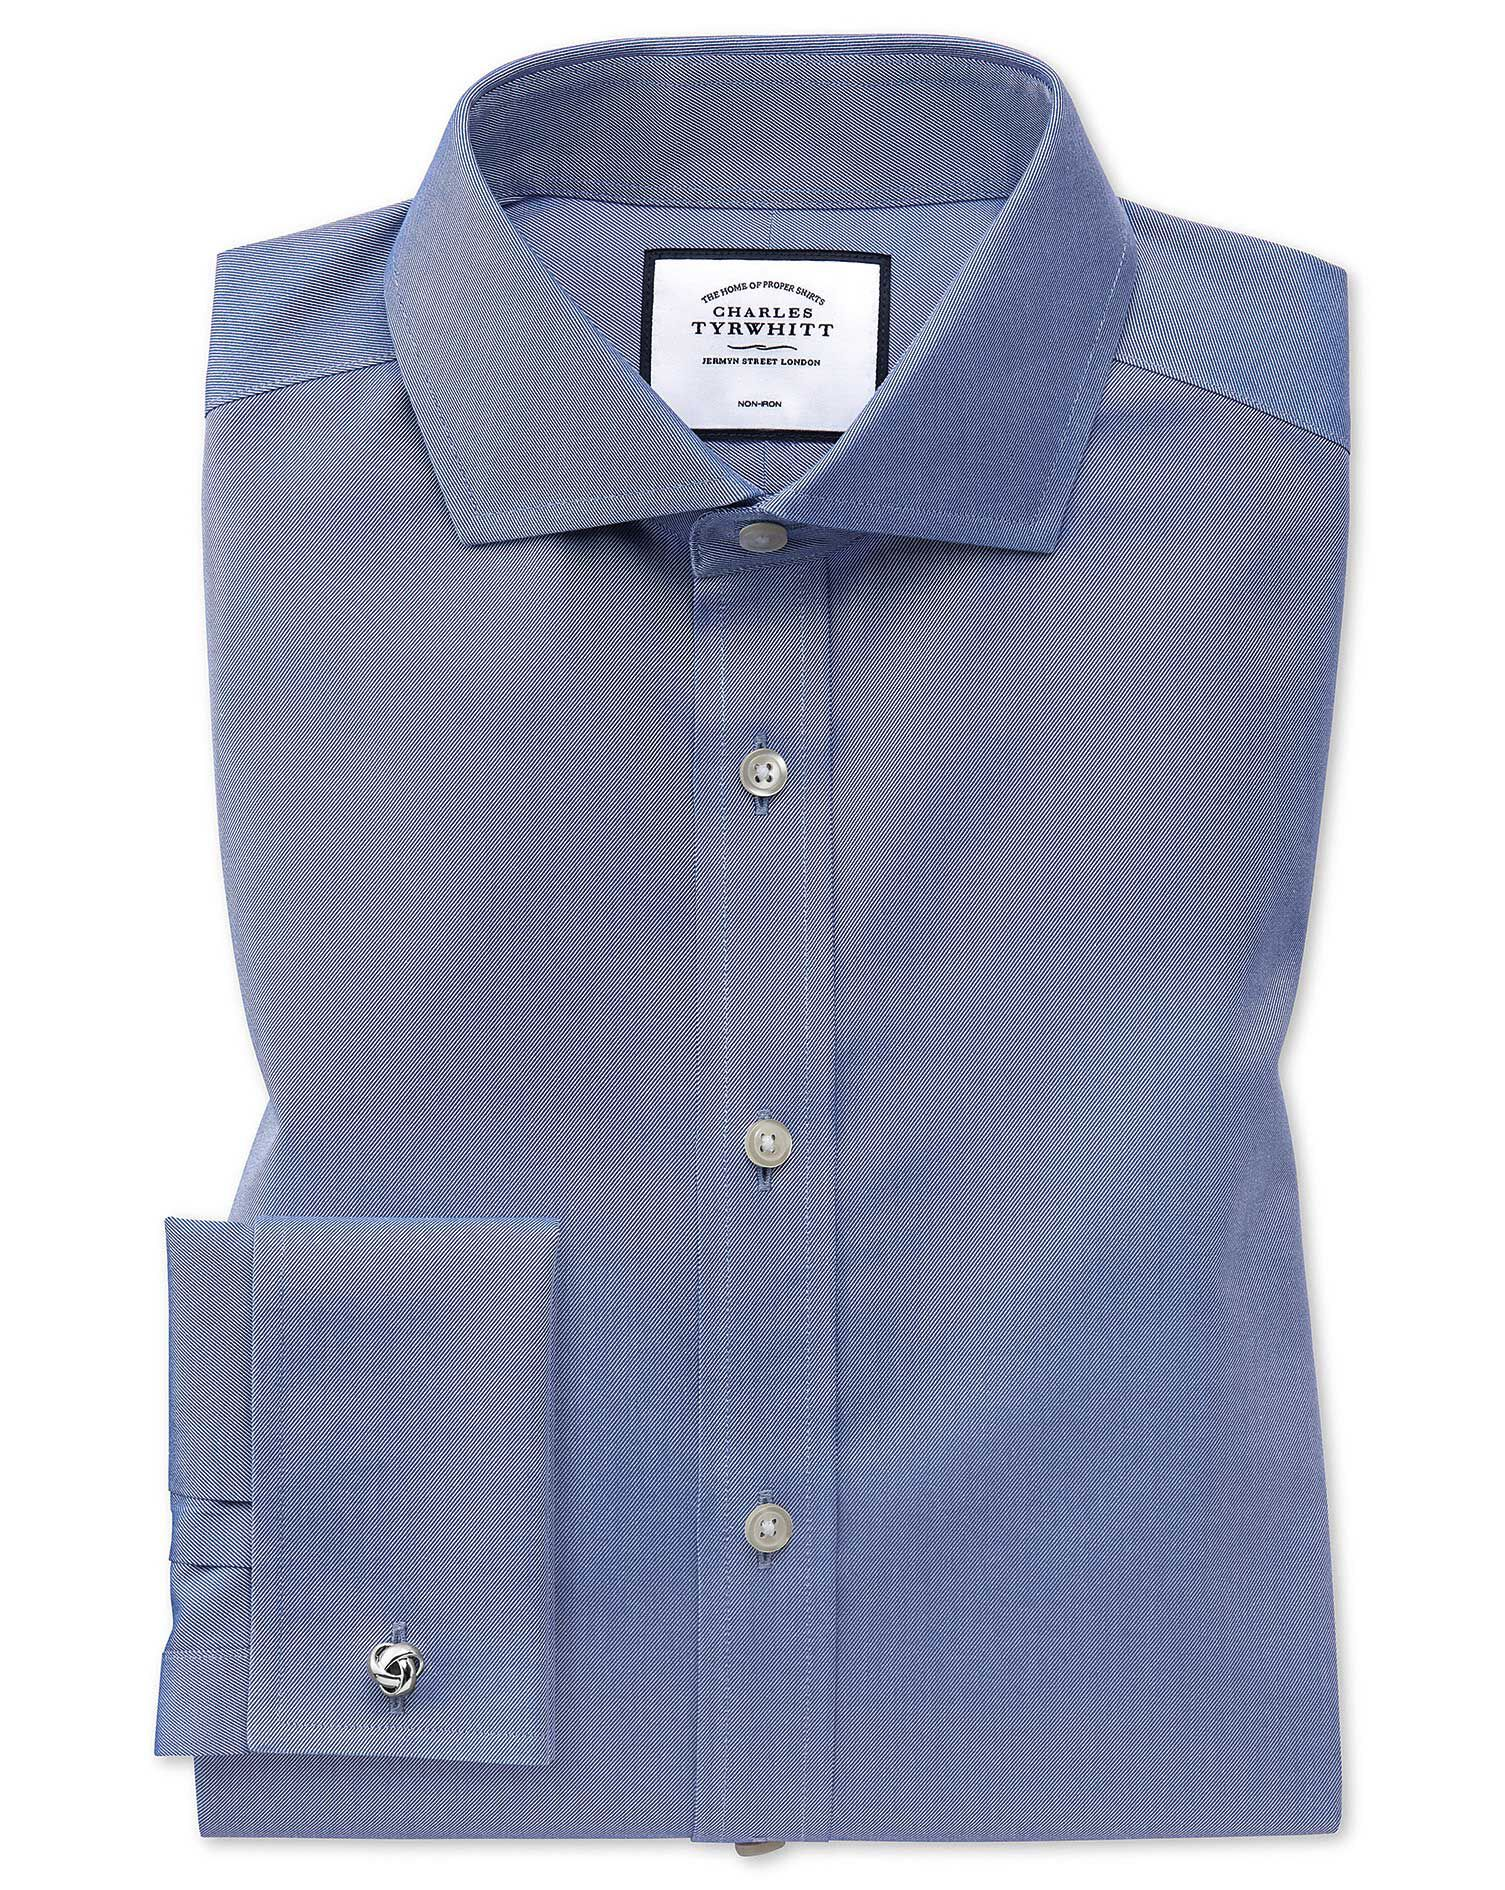 Slim Fit Cutaway Non-Iron Twill Mid Blue Cotton Formal Shirt Single Cuff Size 17.5/38 by Charles Tyr